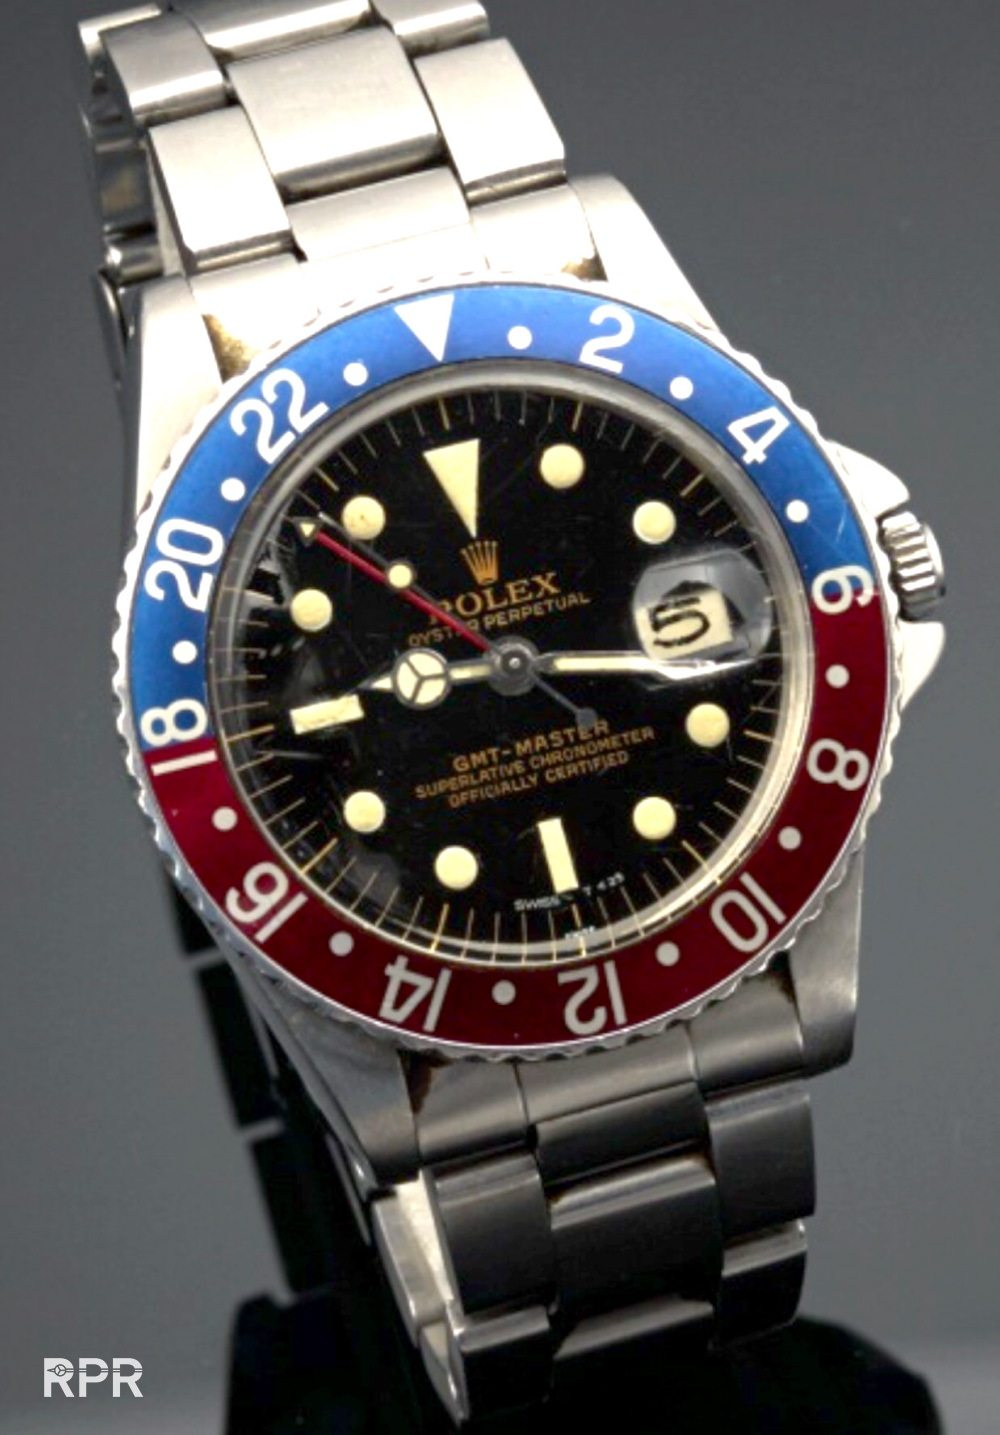 rpr_double_swiss_gmt